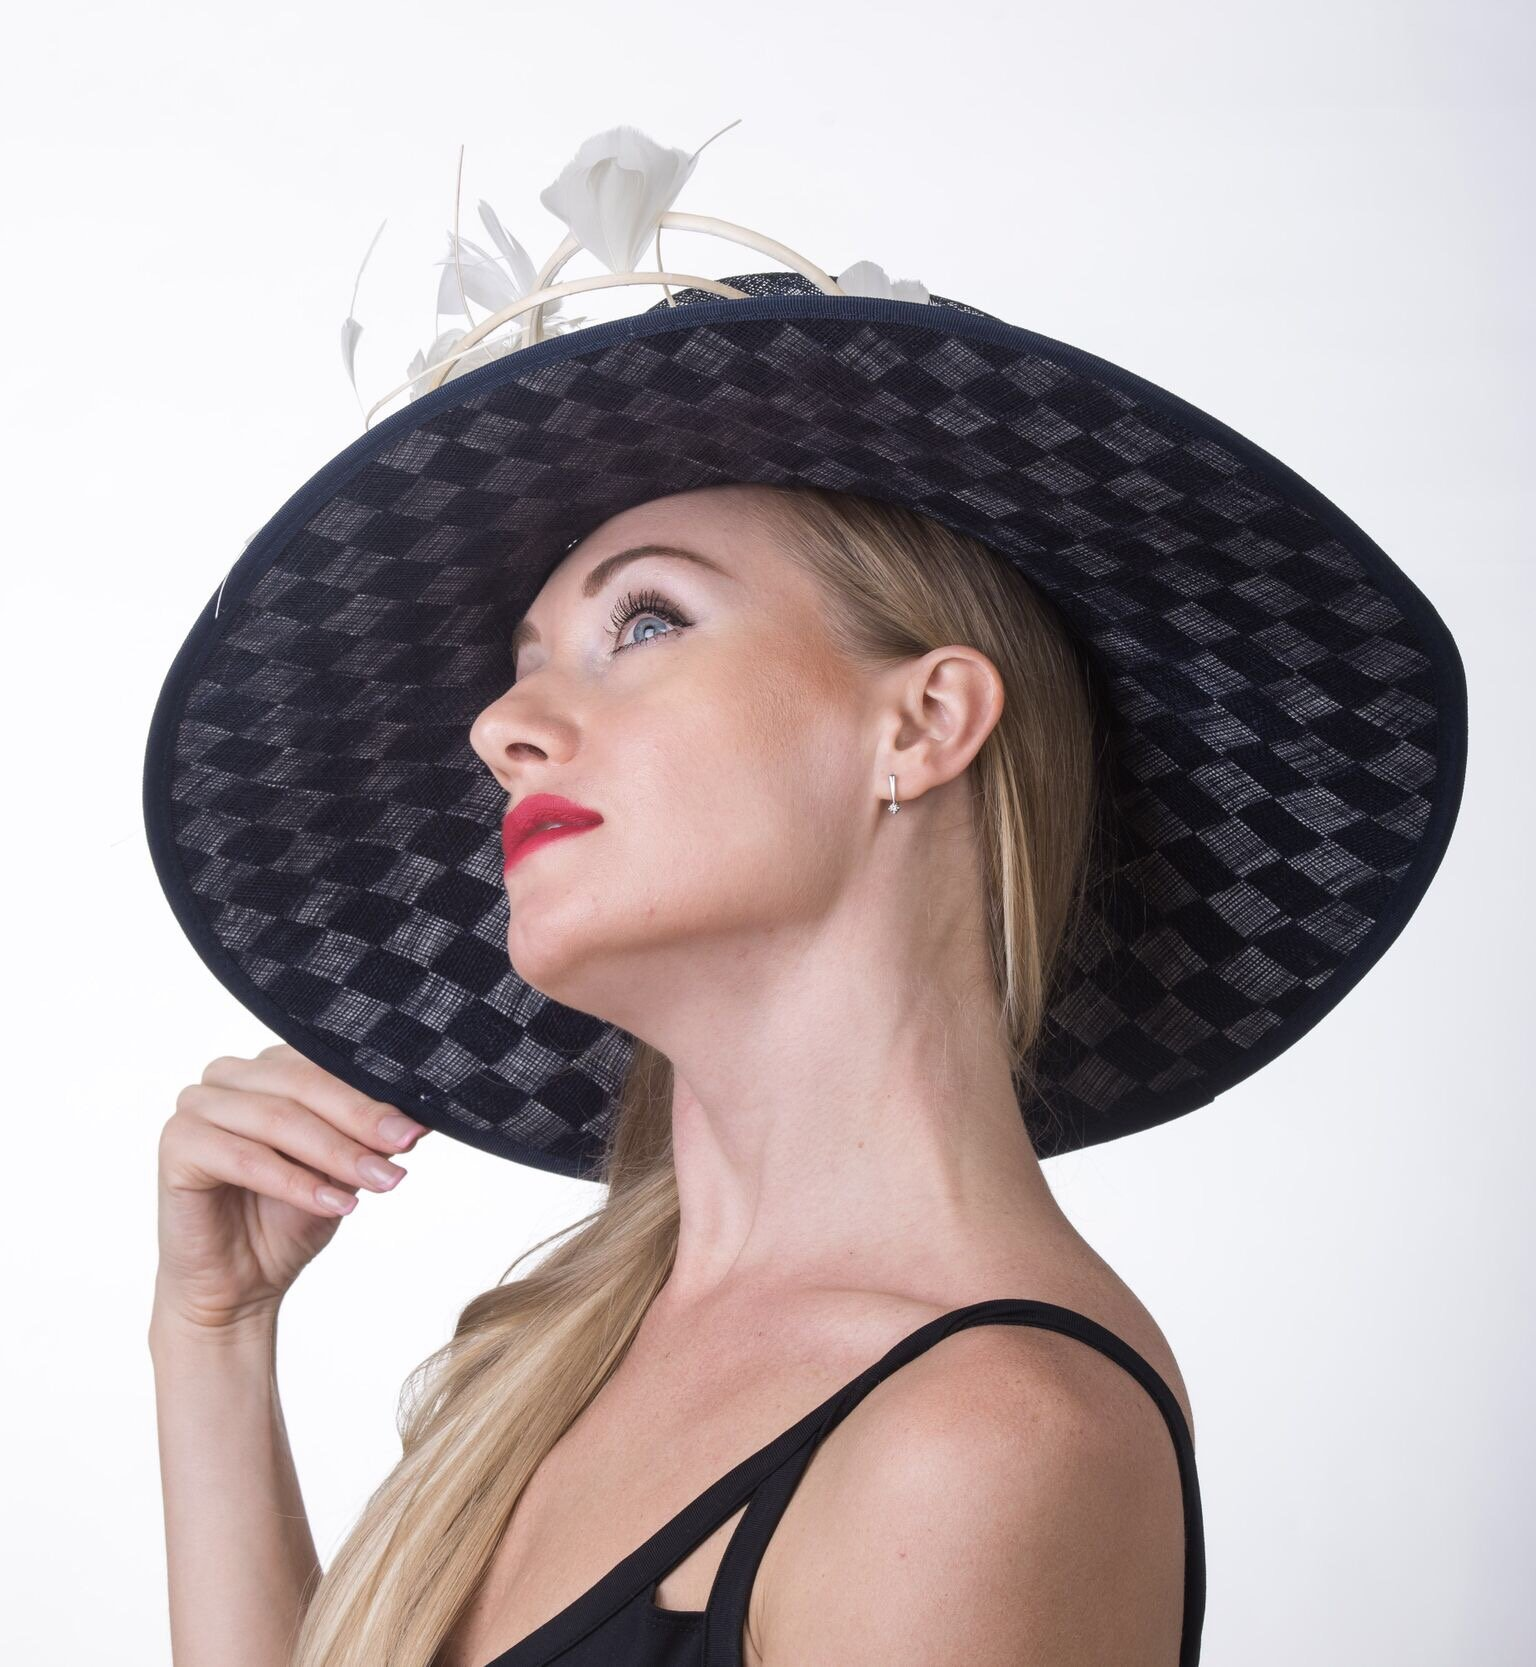 Gorgeous Wide Brim Sinamay Floral Feathers Derby Dress Hat Navy Blue w White by ray&daniel (Image #2)